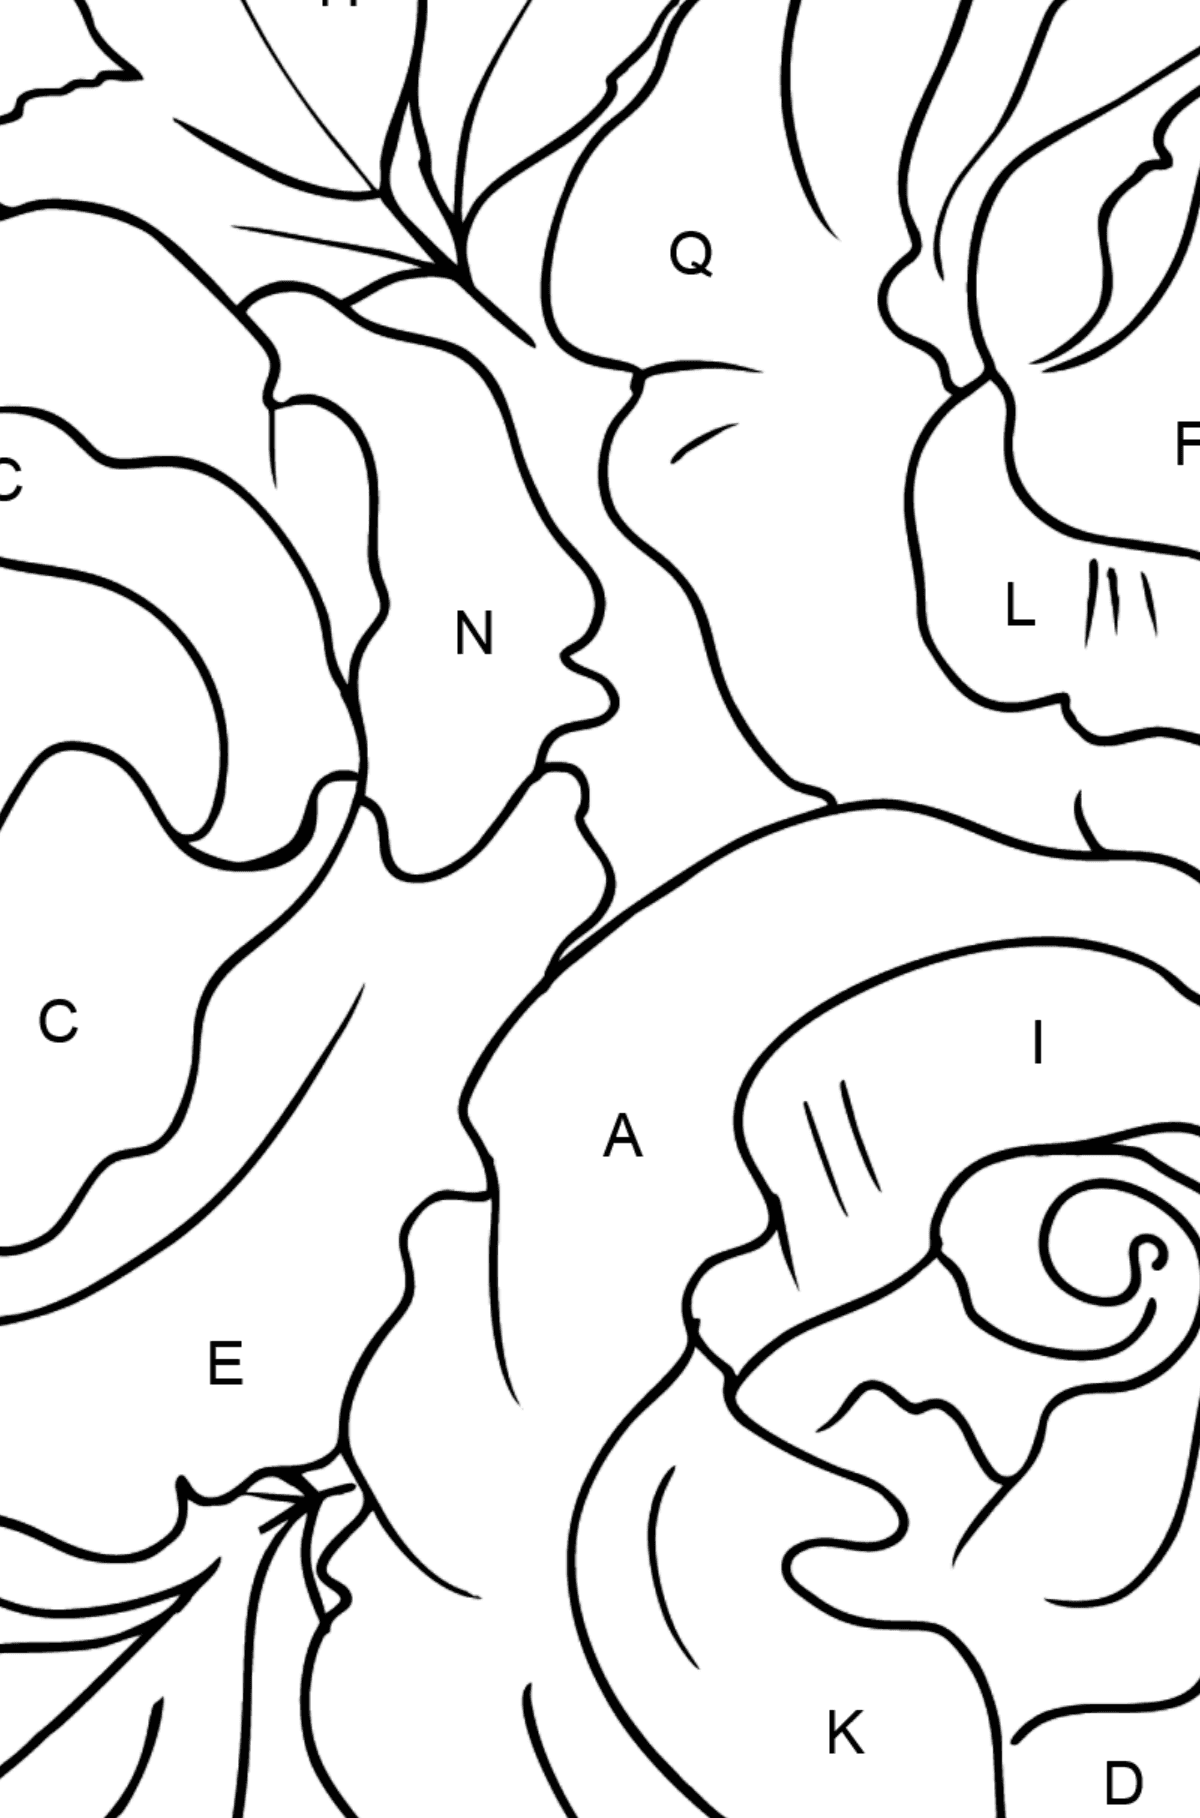 Roses Coloring Page - Coloring by Letters for Kids